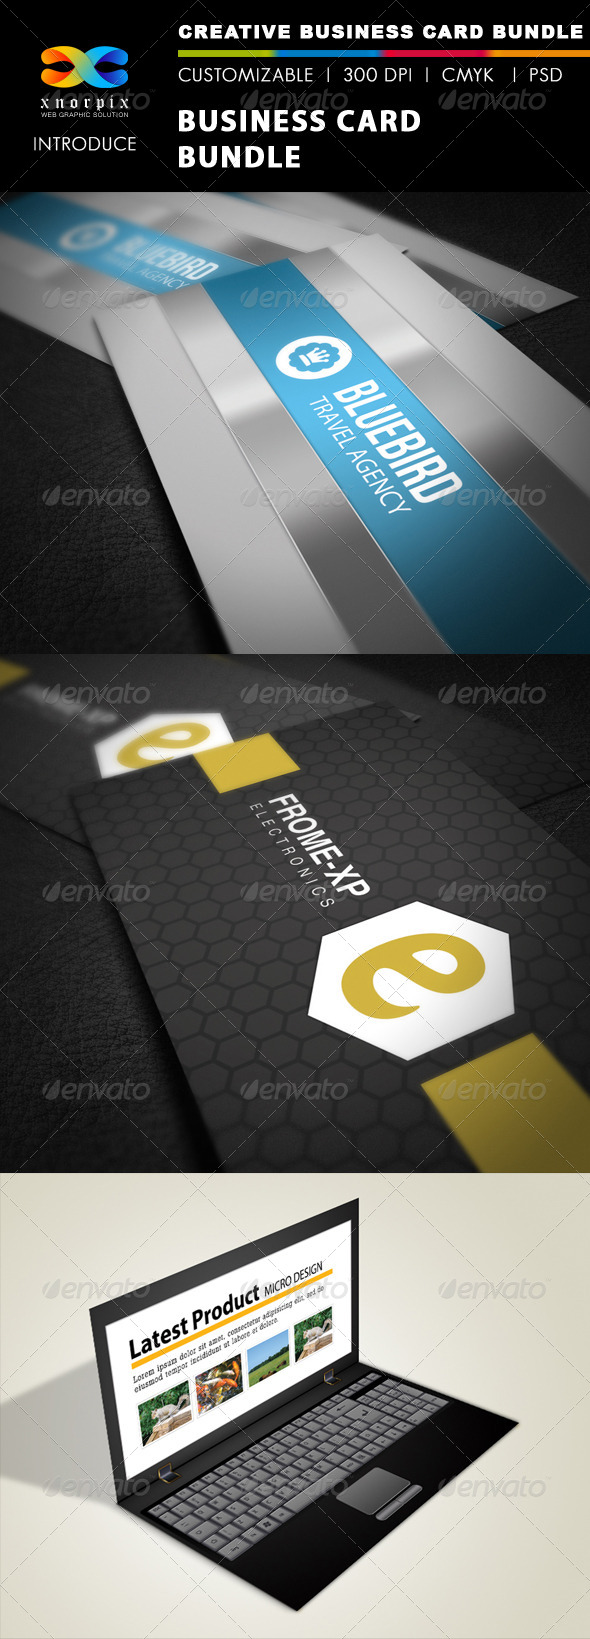 GraphicRiver Business Card Bundle 3 in 1-Vol 16 5285444